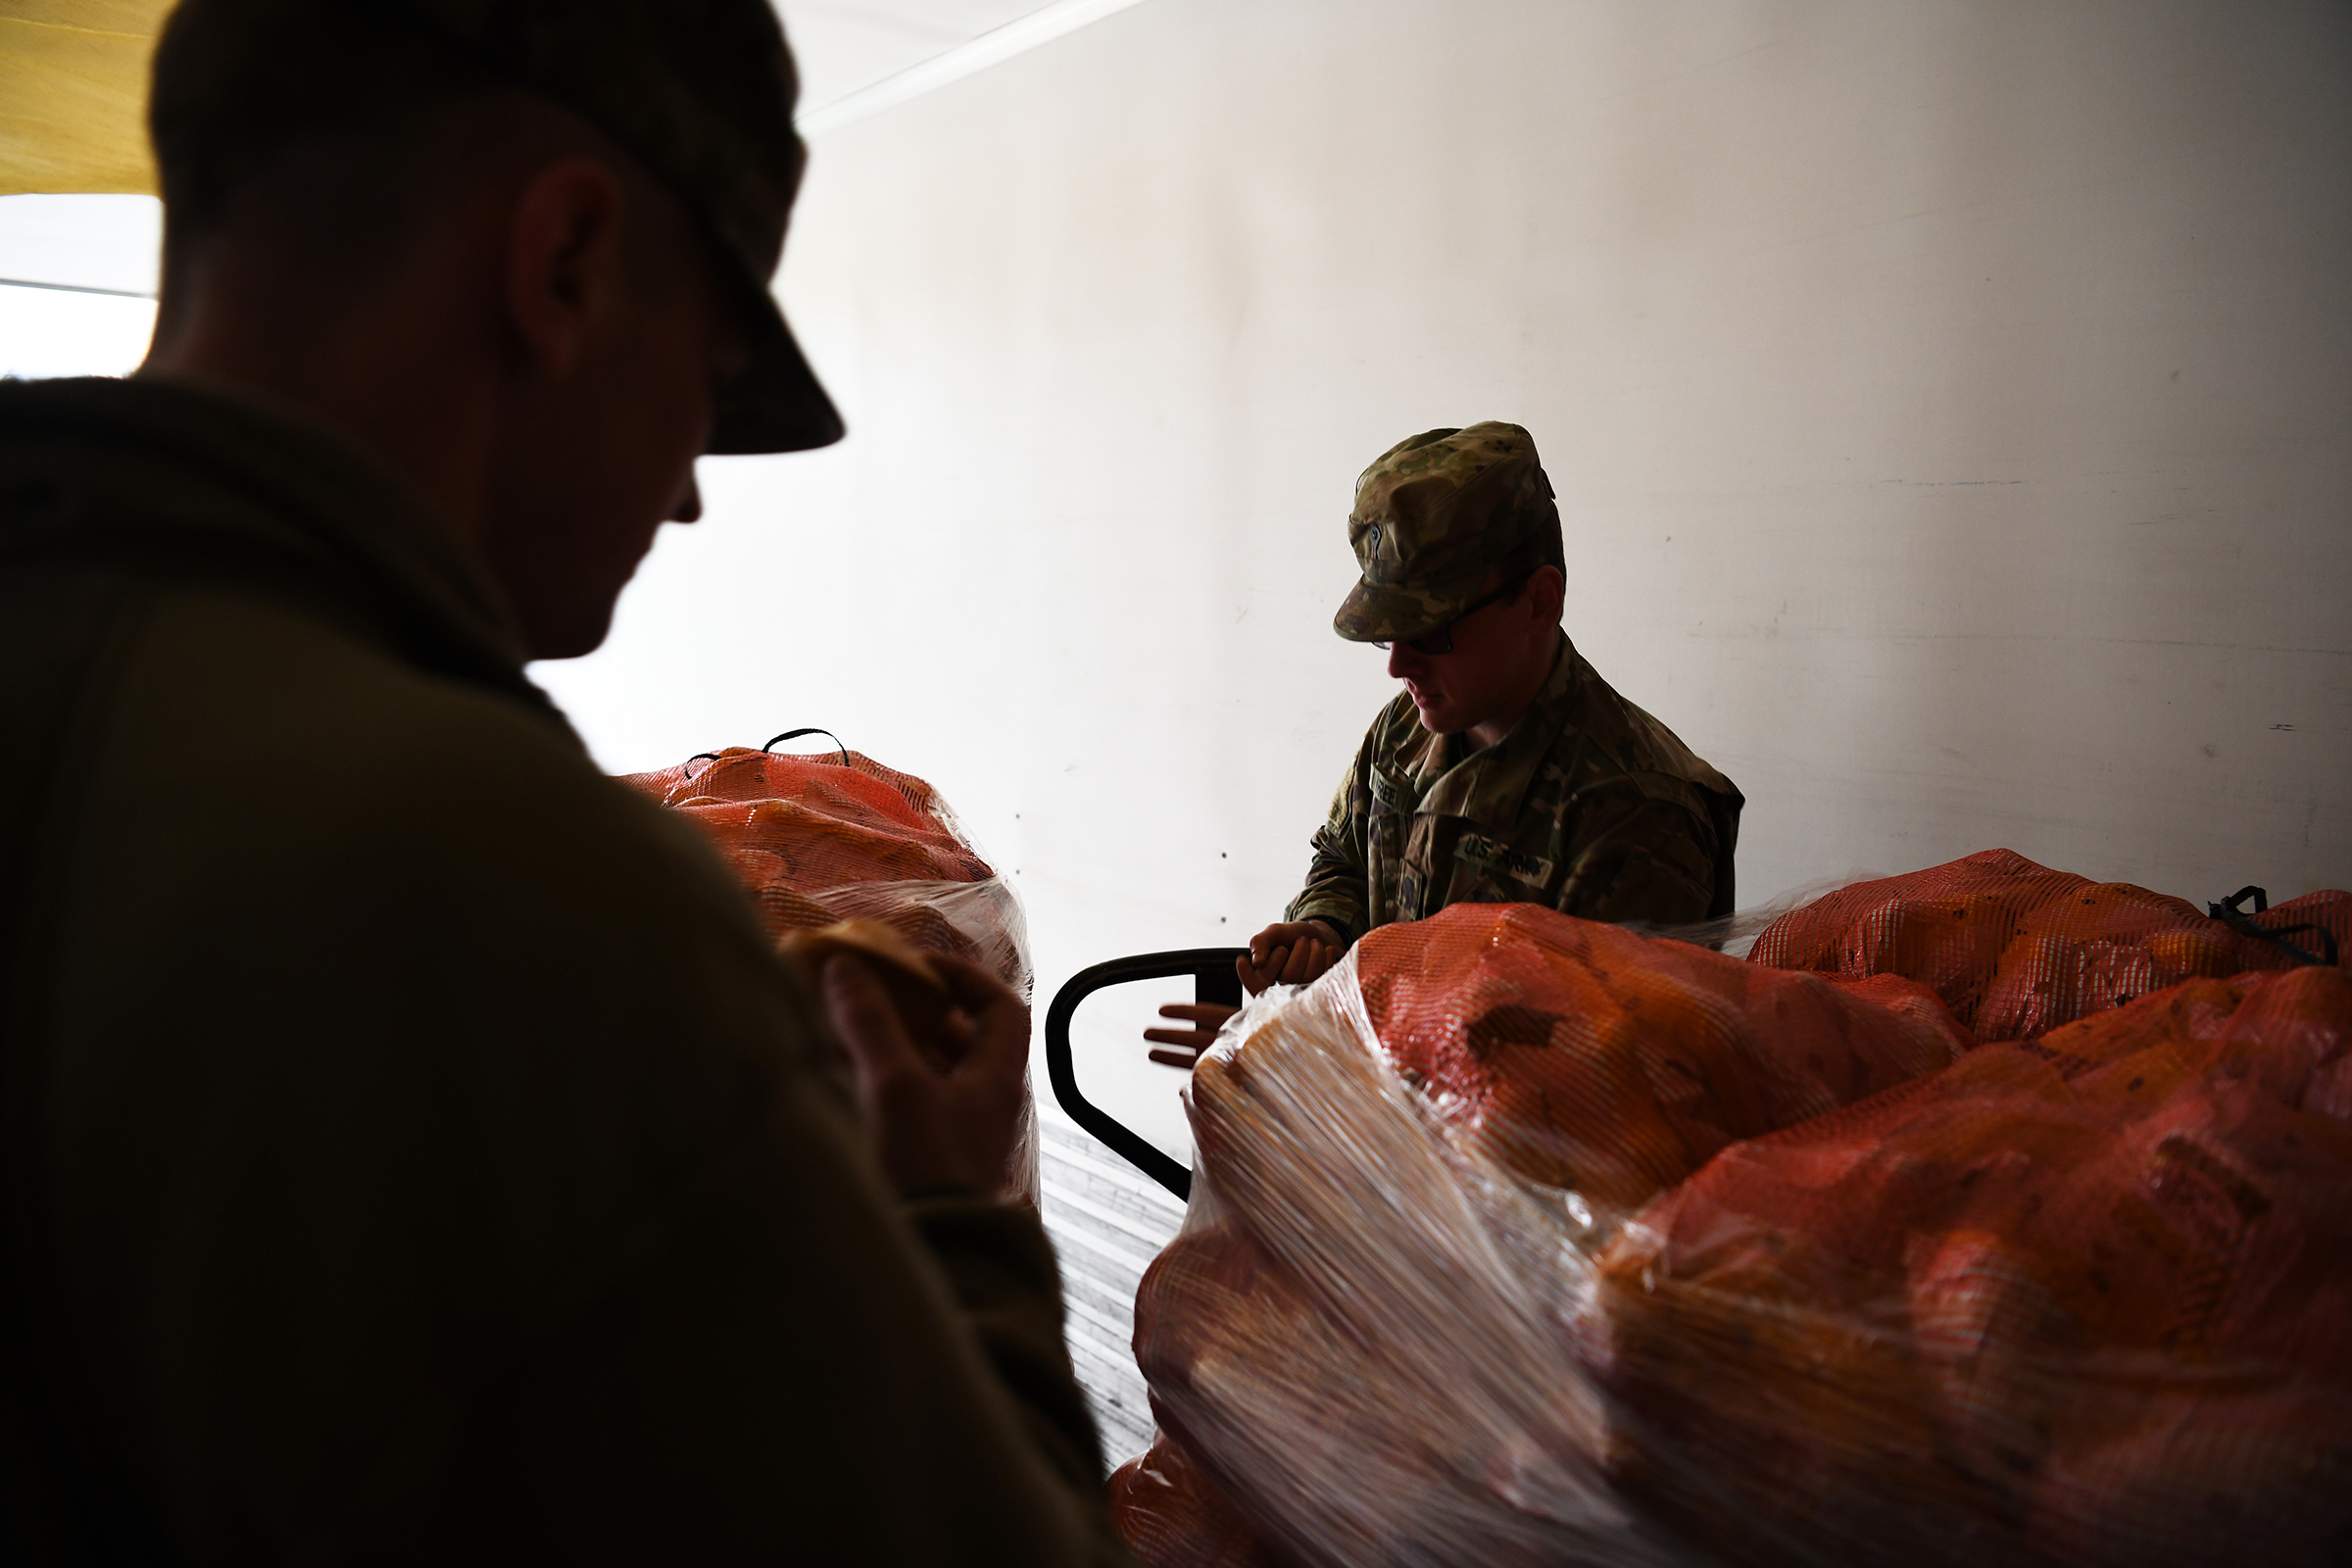 Soldiers unload food at the Dayton Foodbank in Dayton, Ohio, on April 21, 2020.